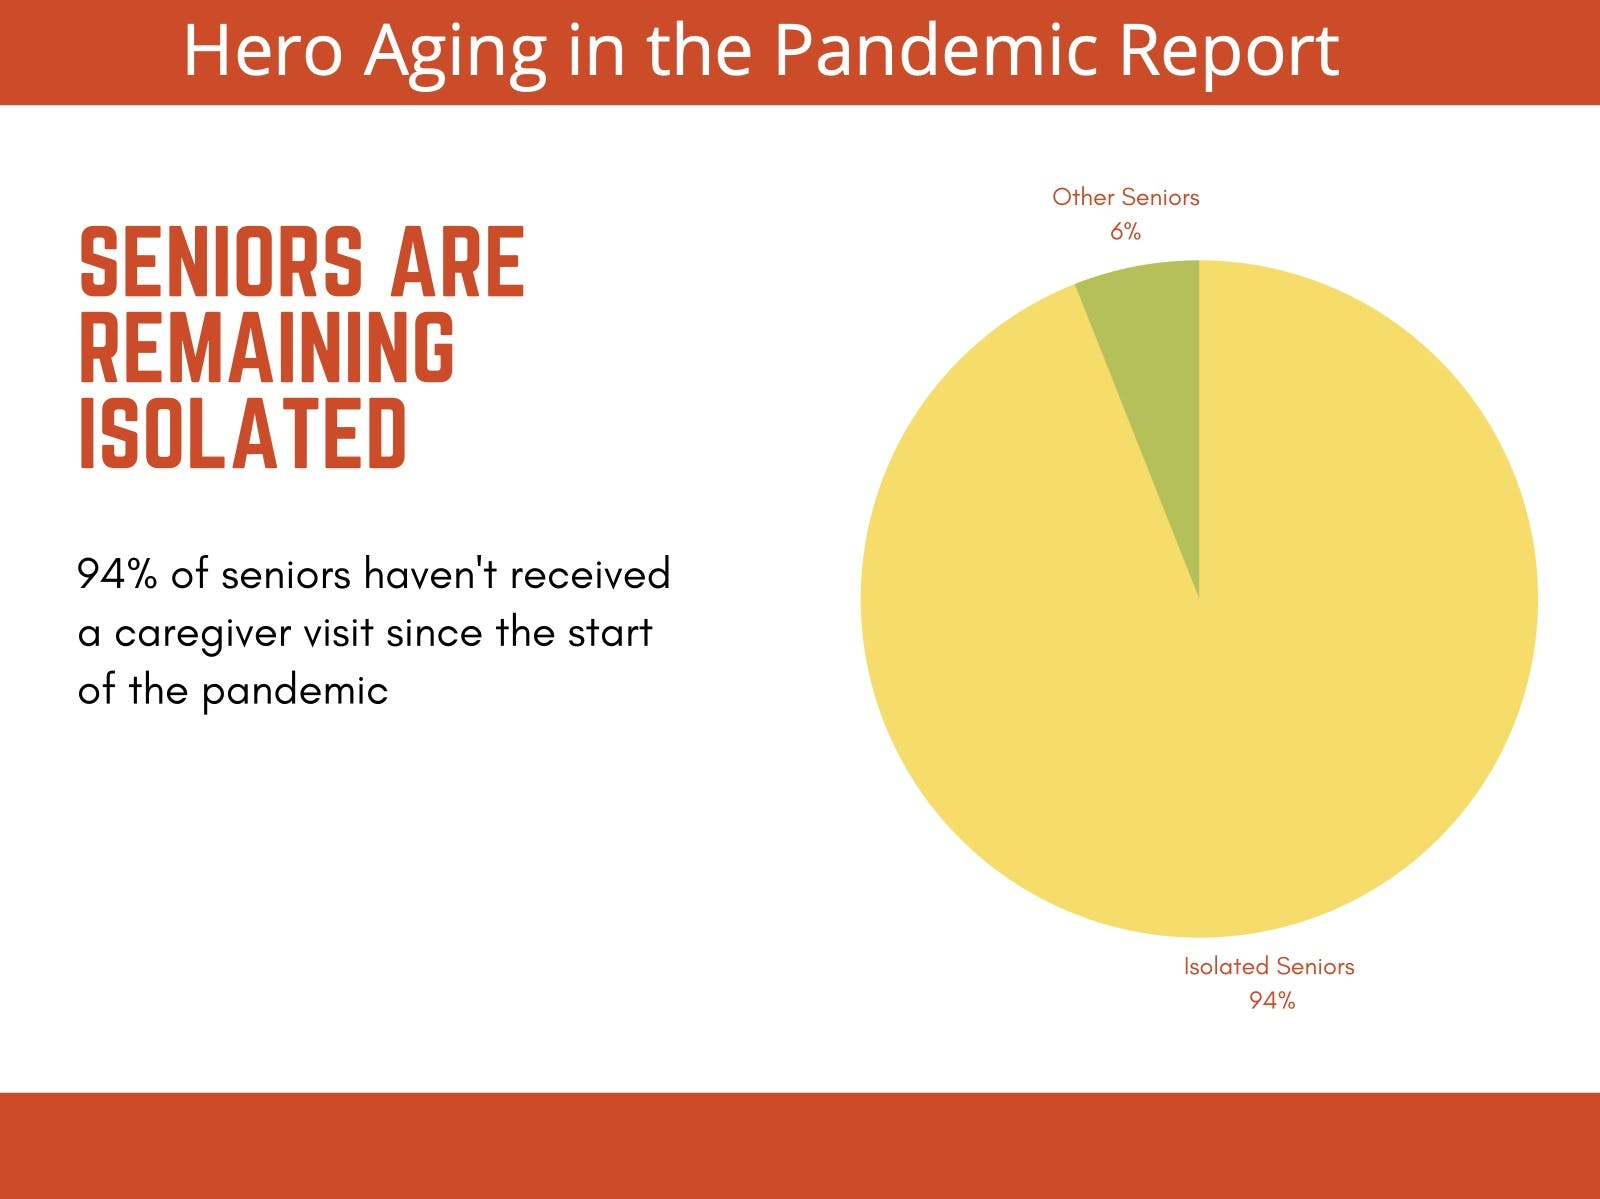 A pie chart showing that 94% of seniors haven't received a caregiver visit since the start of the pandemic.